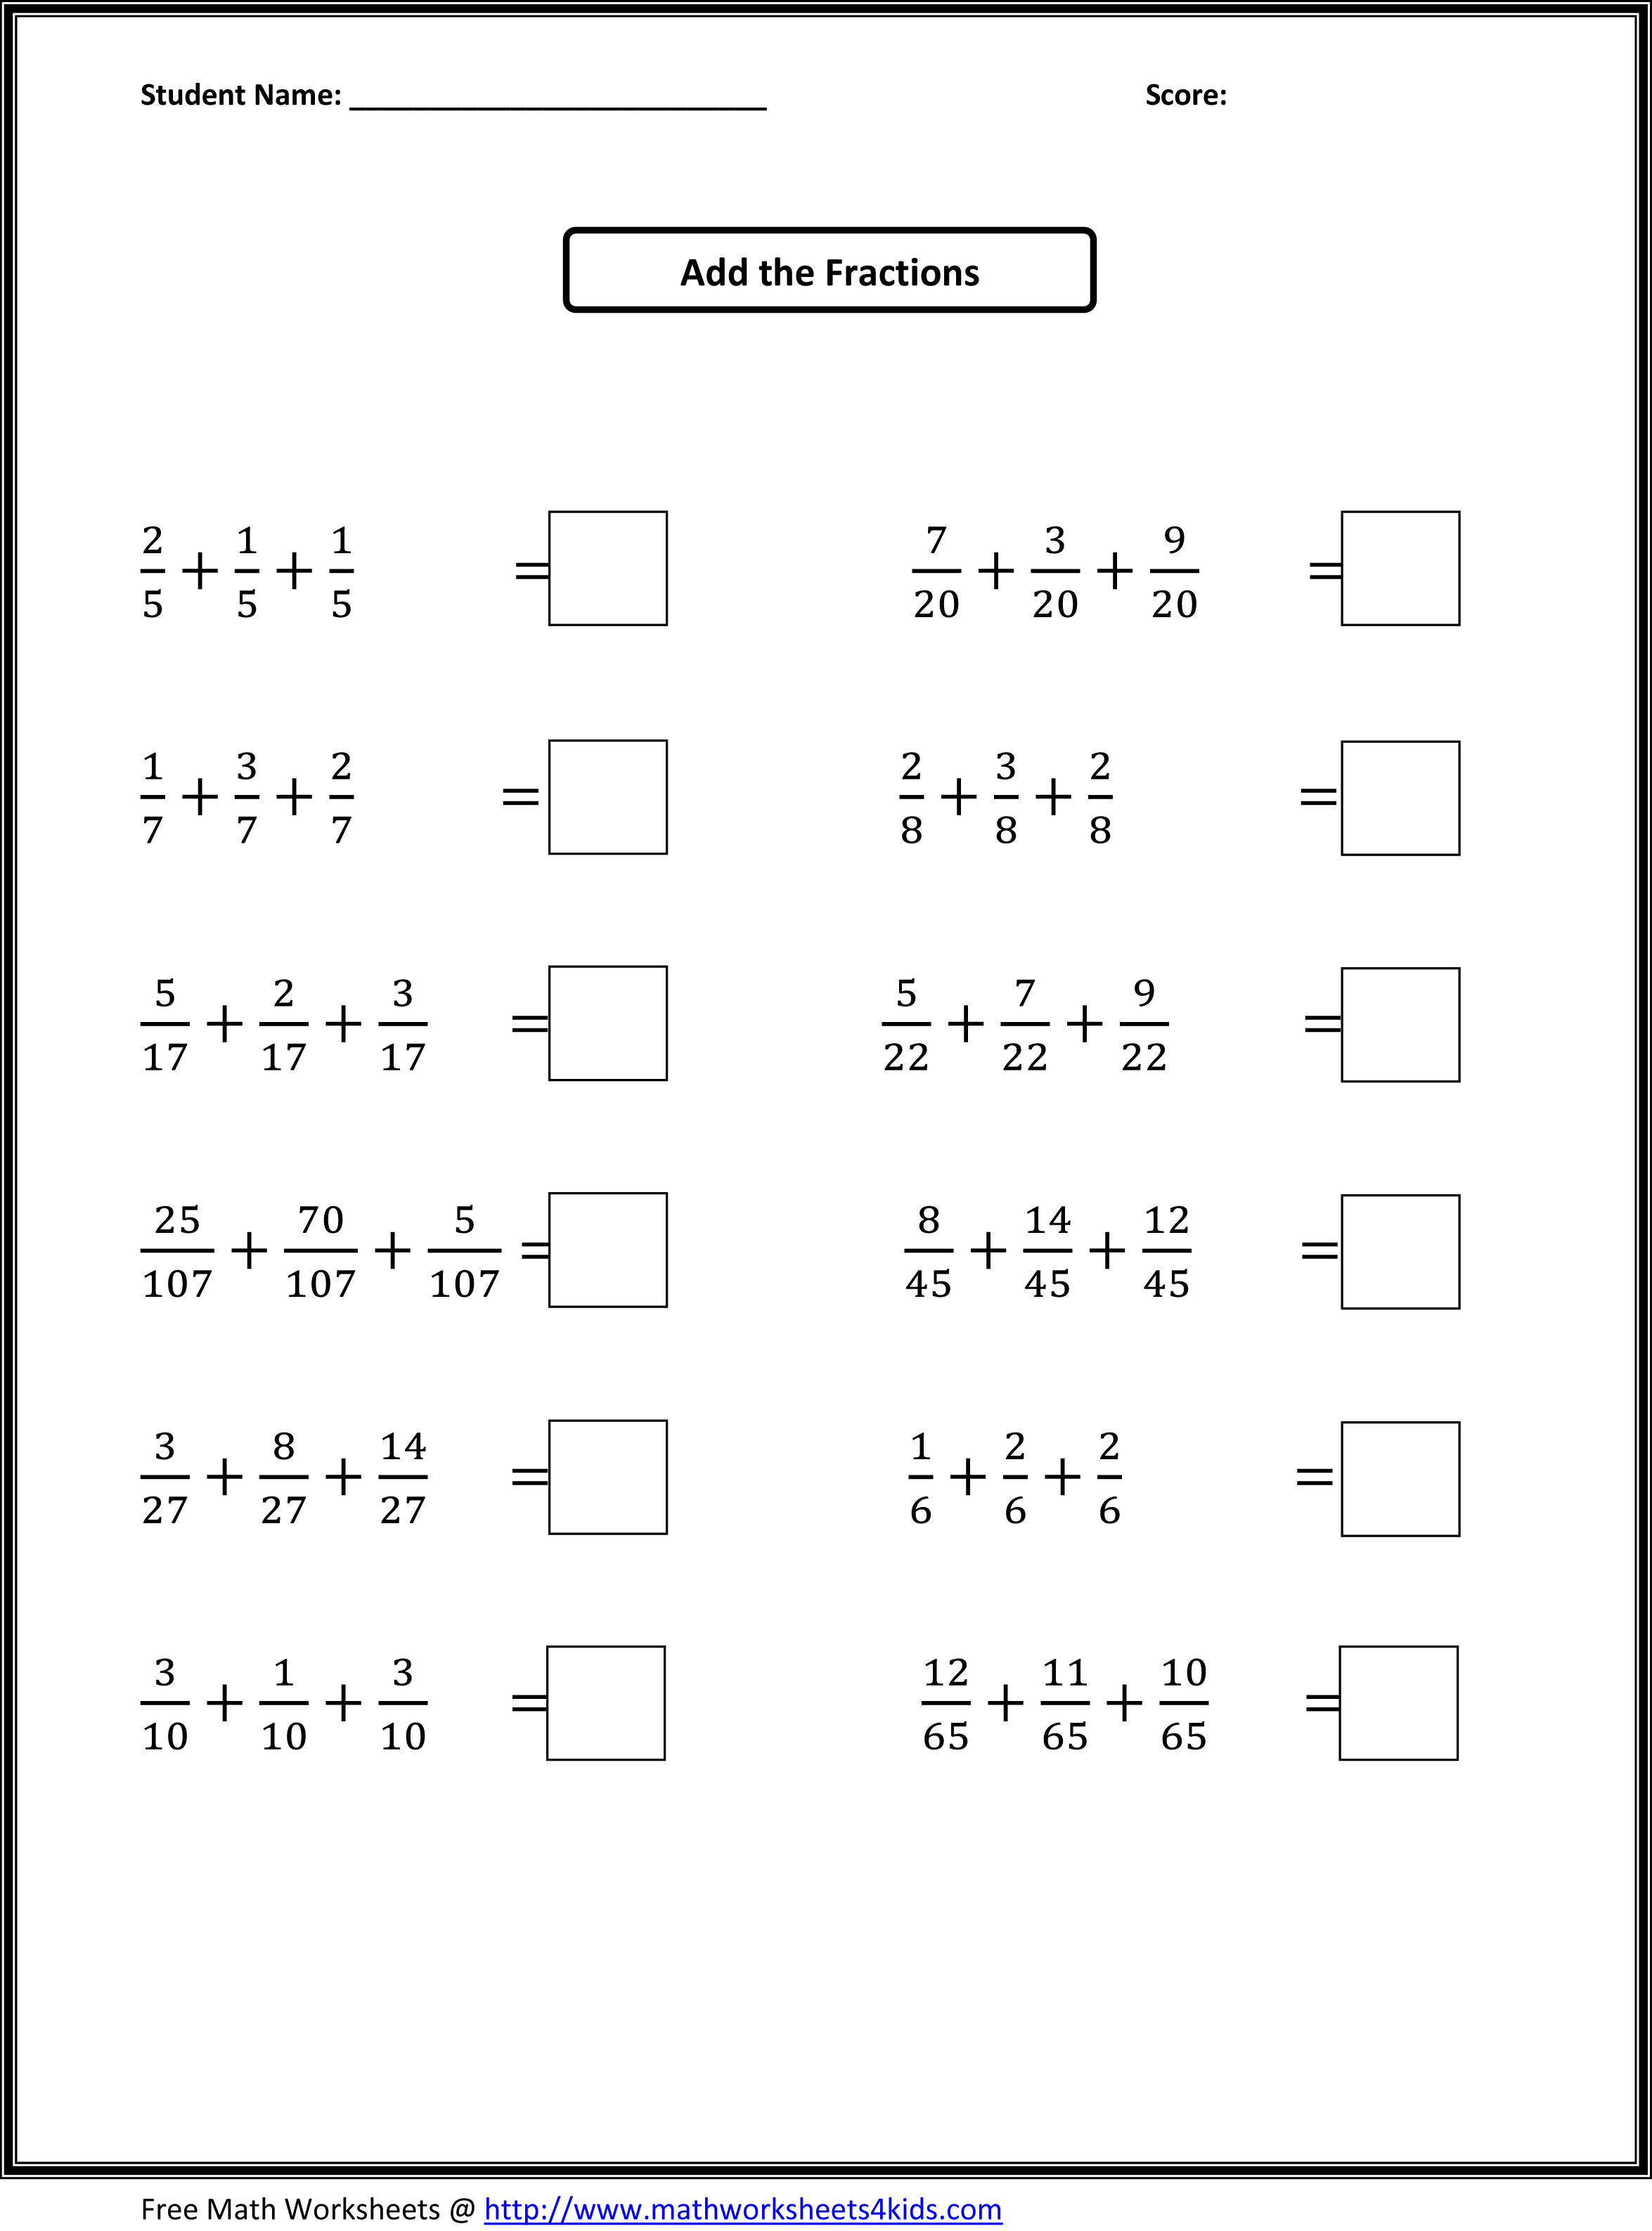 Printables 4th Grade Addition Worksheets fraction worksheets 4th grade kids activities converting improper fractions mixed numbers writing printable free adding print